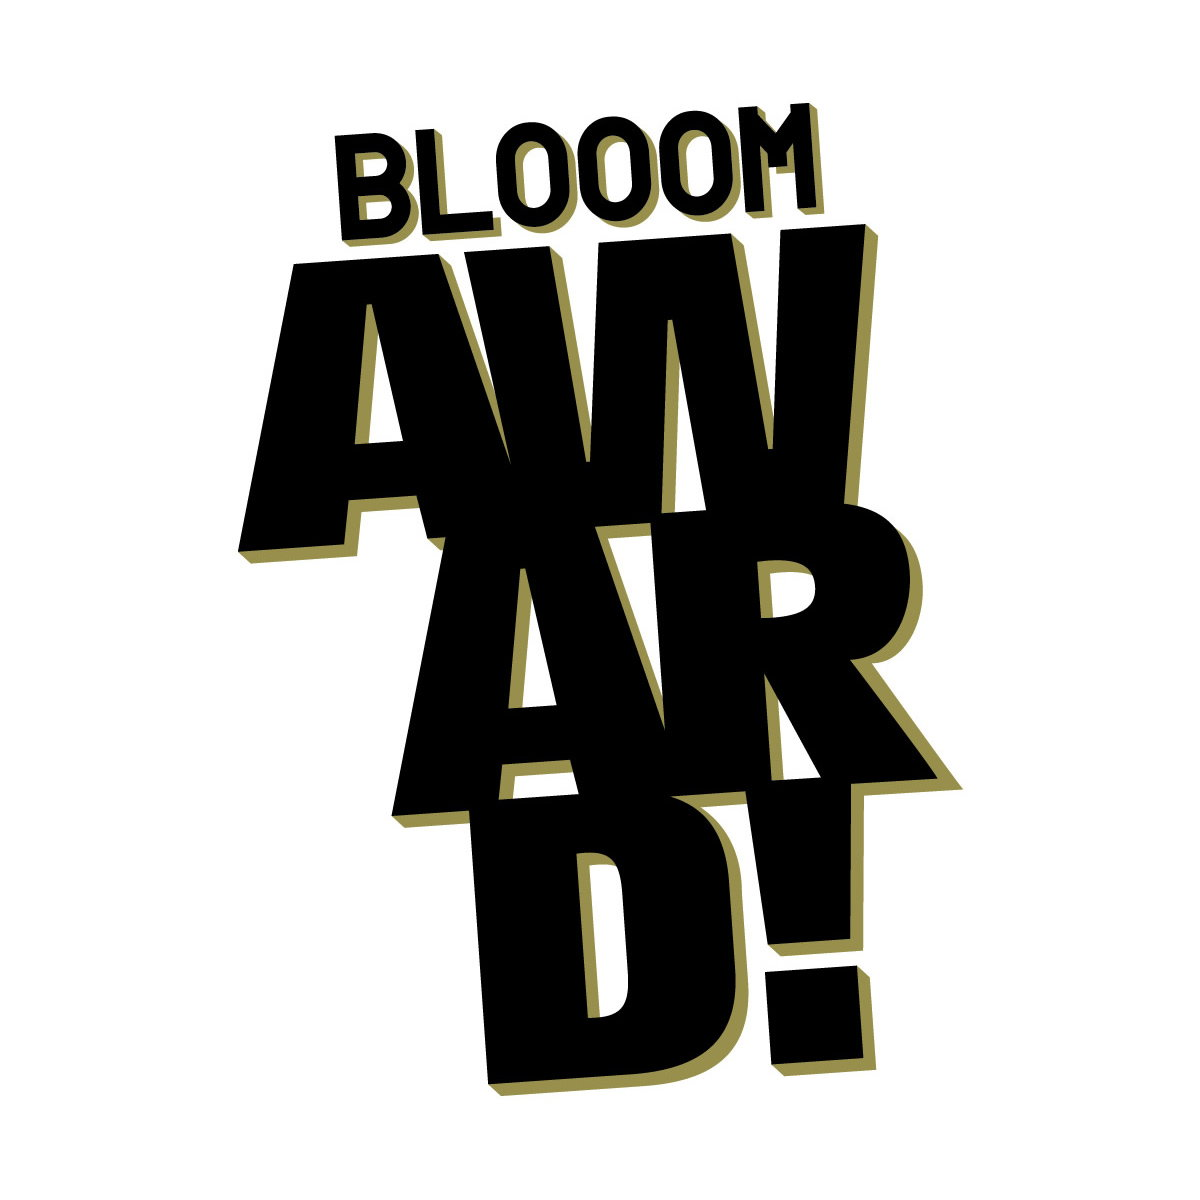 BLOOOM Award by WARSTEINER 2016